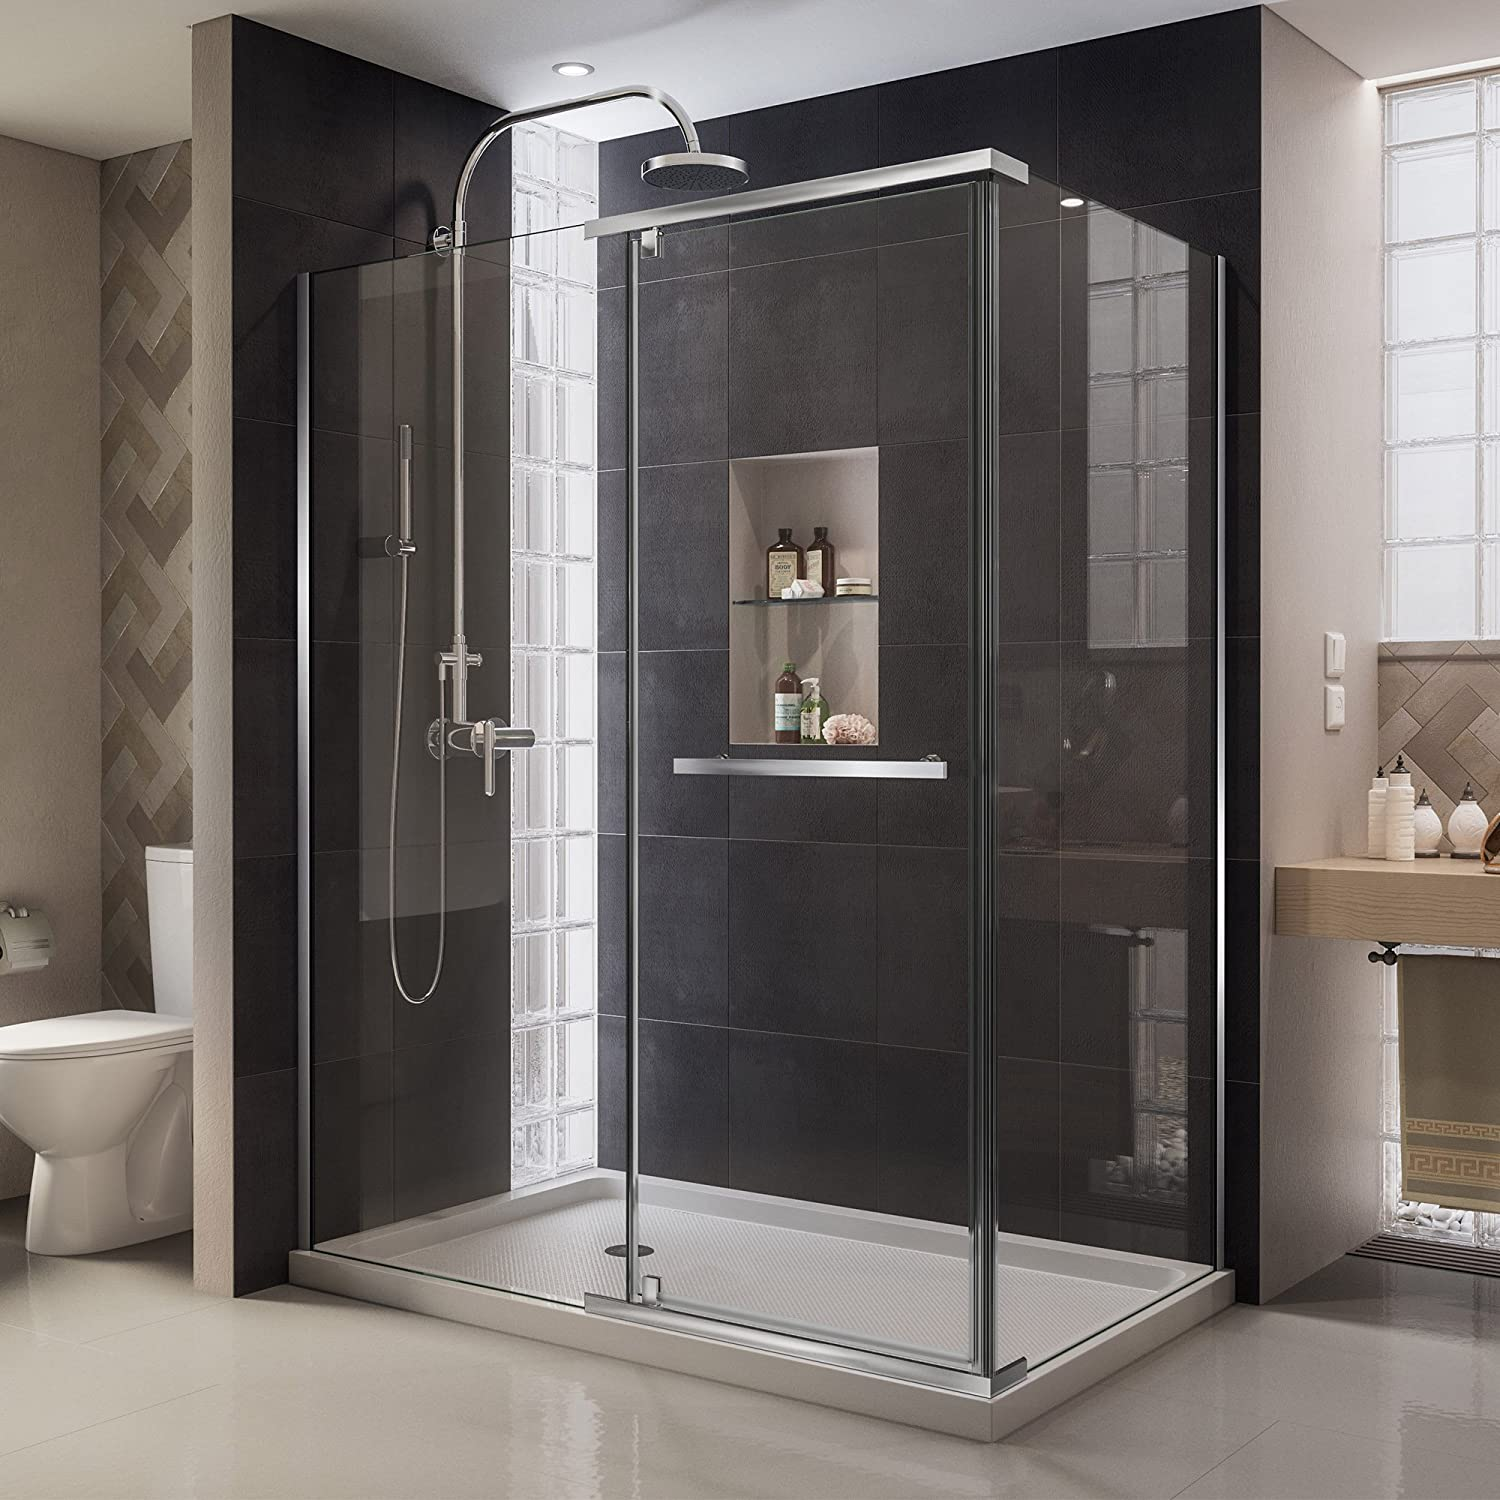 DreamLine Quatra 32 5 16 in. D x 46 5 8 in. W x 72 in. H Frameless Pivot Shower Enclosure in Chrome, SHEN-1132460-01